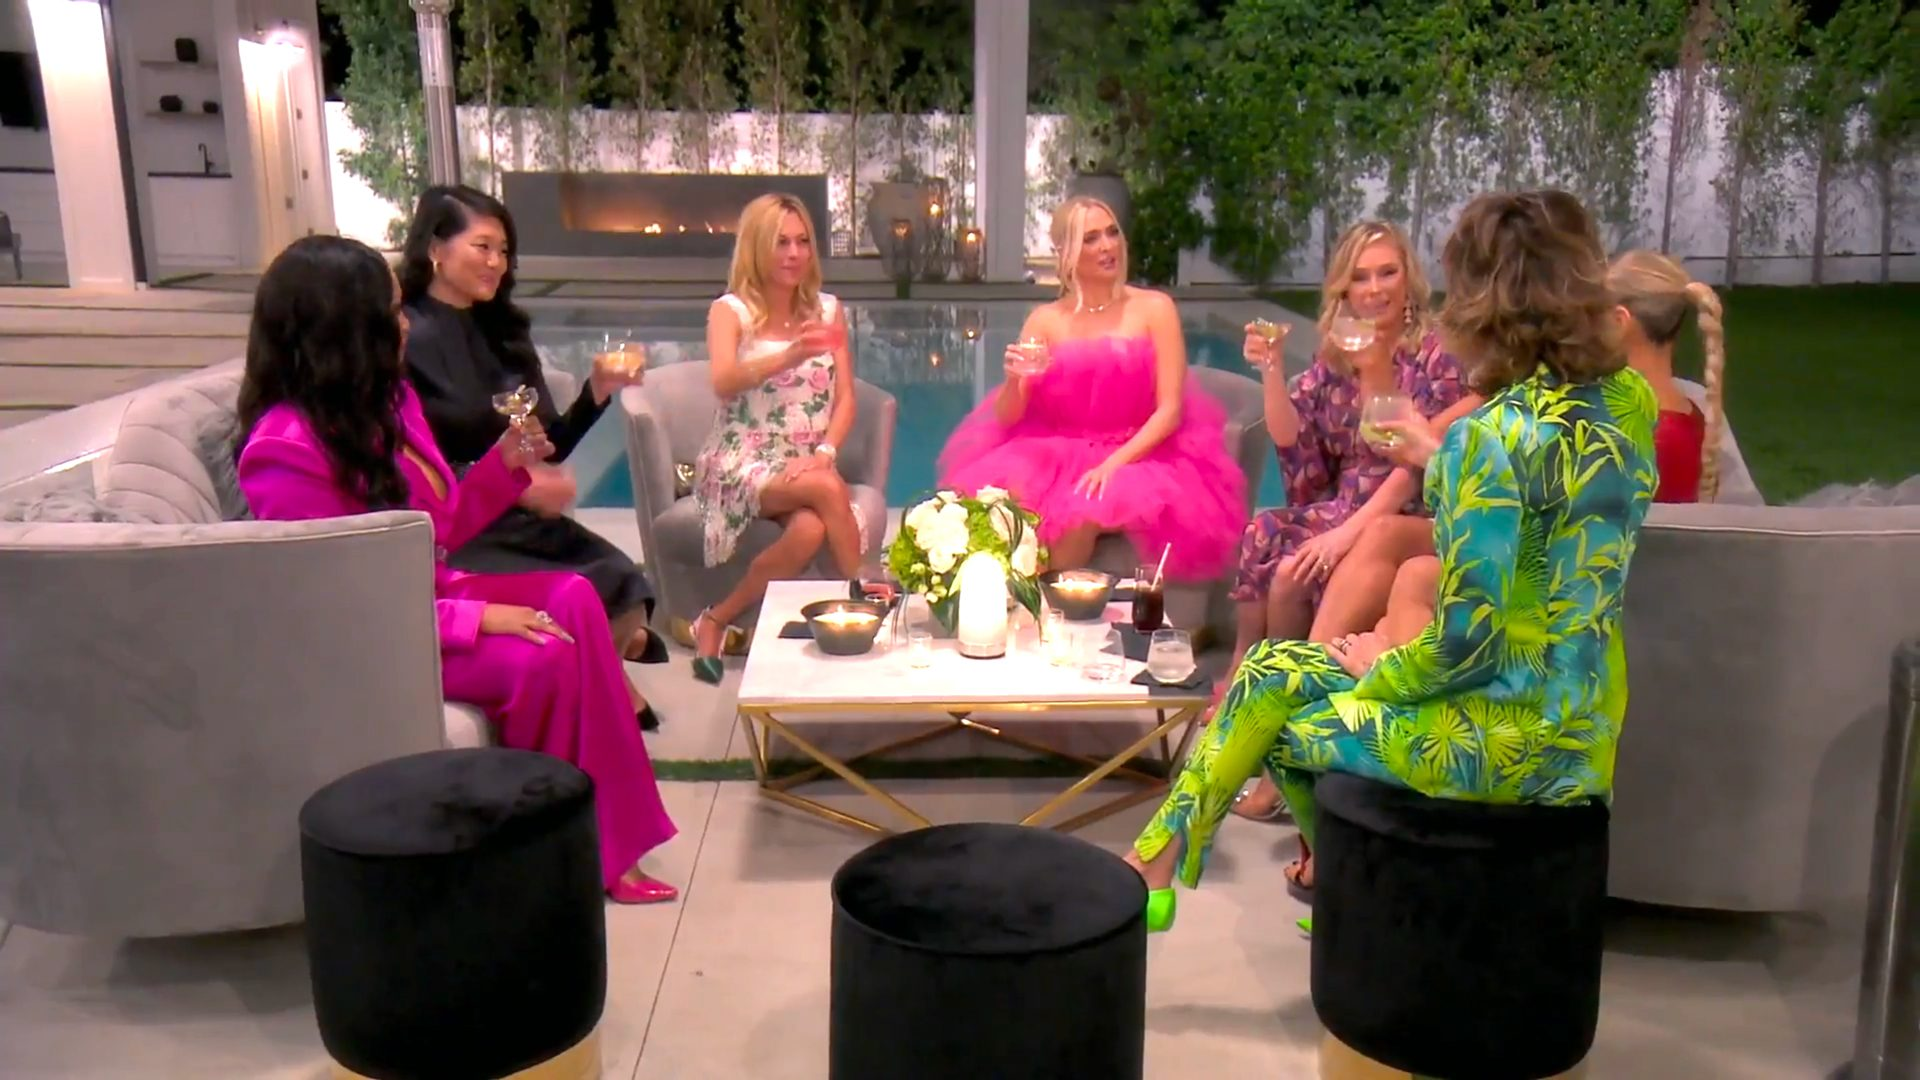 Real Housewives of Beverly Hills Season 11 Episode 11